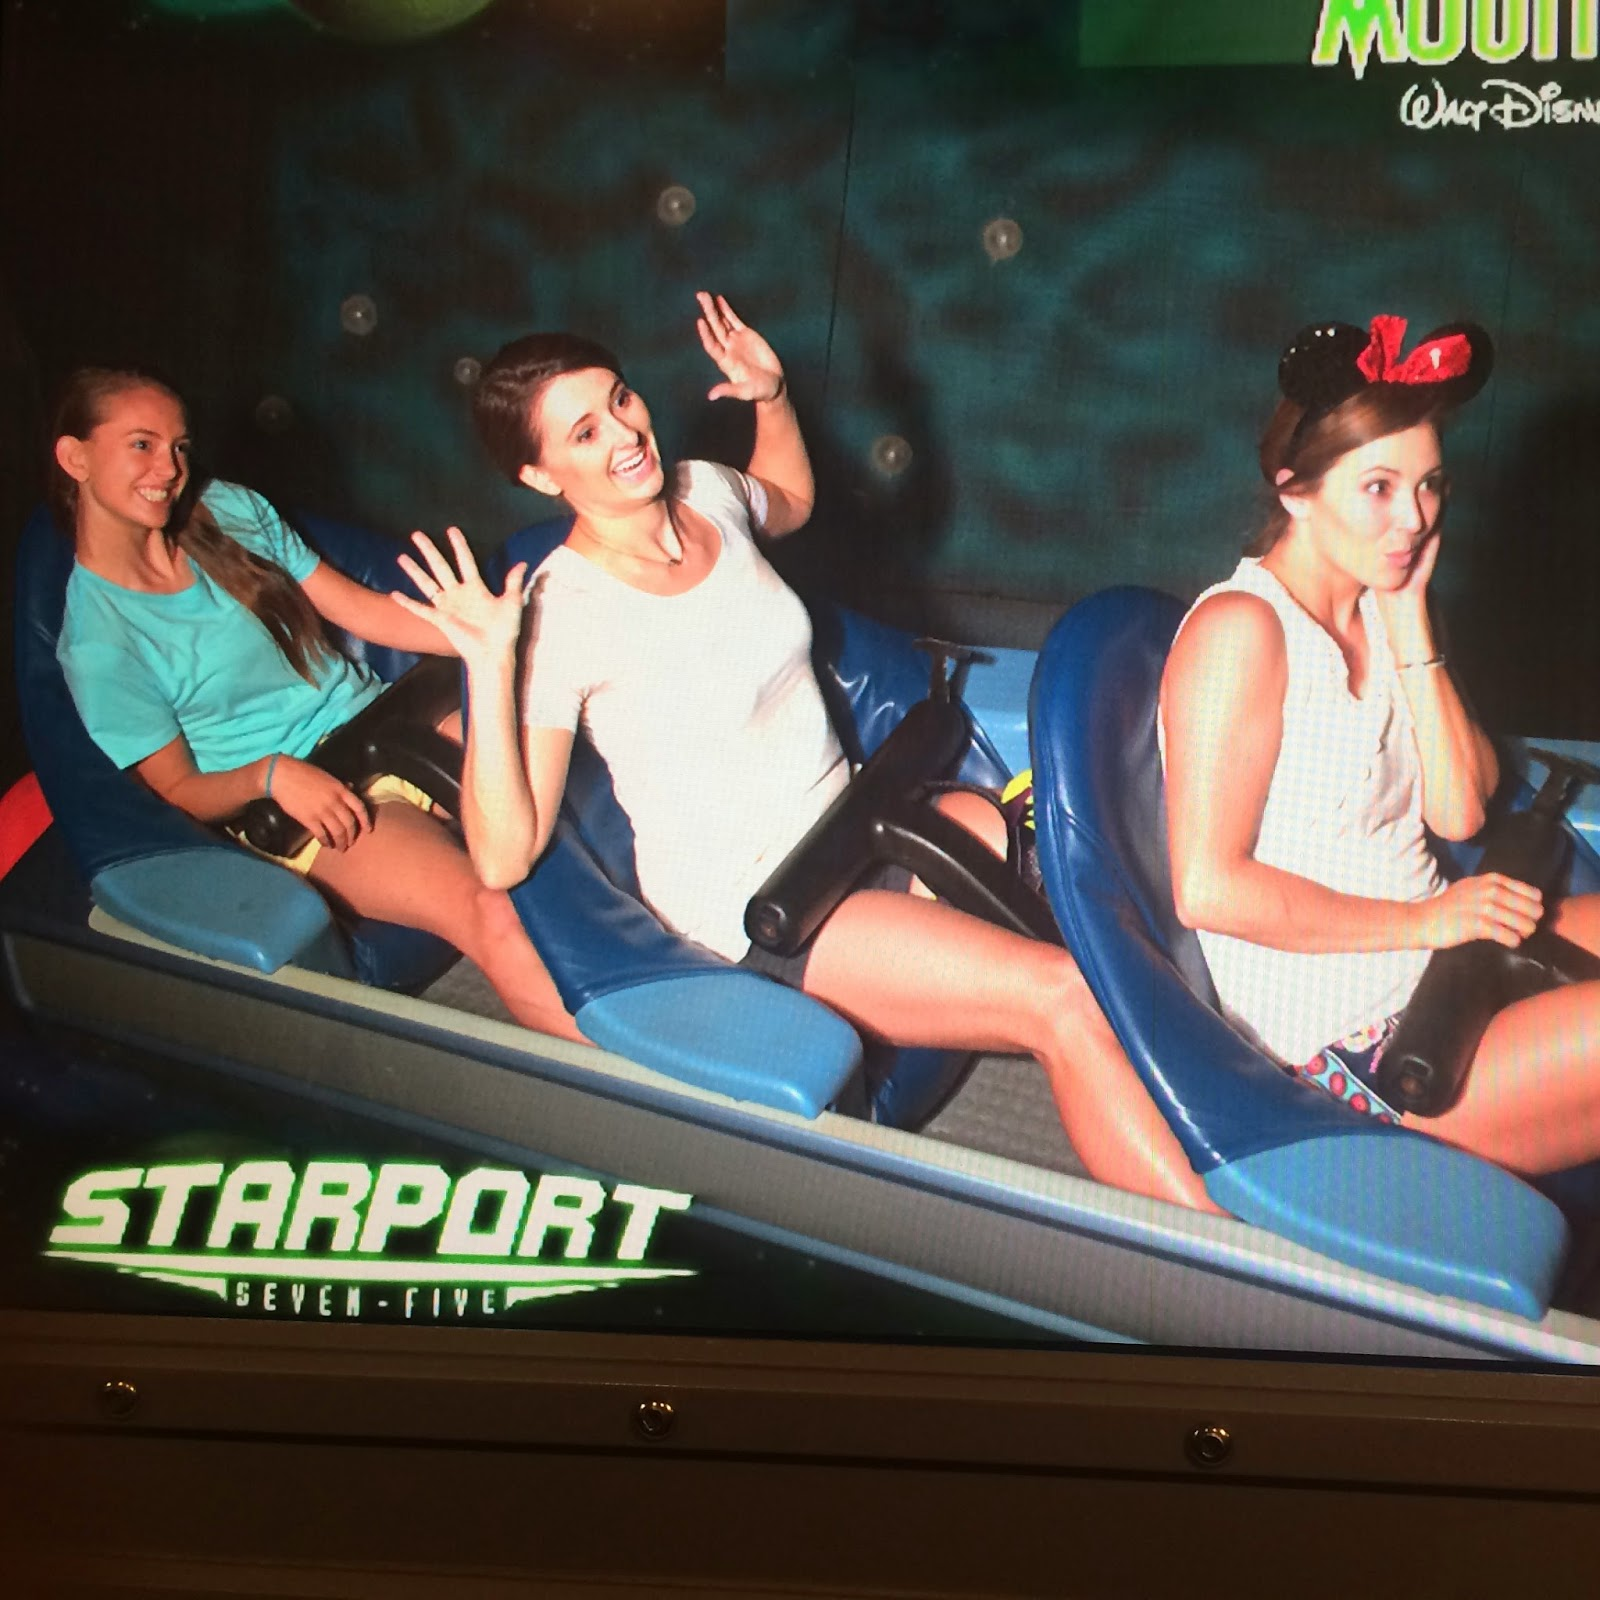 rollercoaster photo